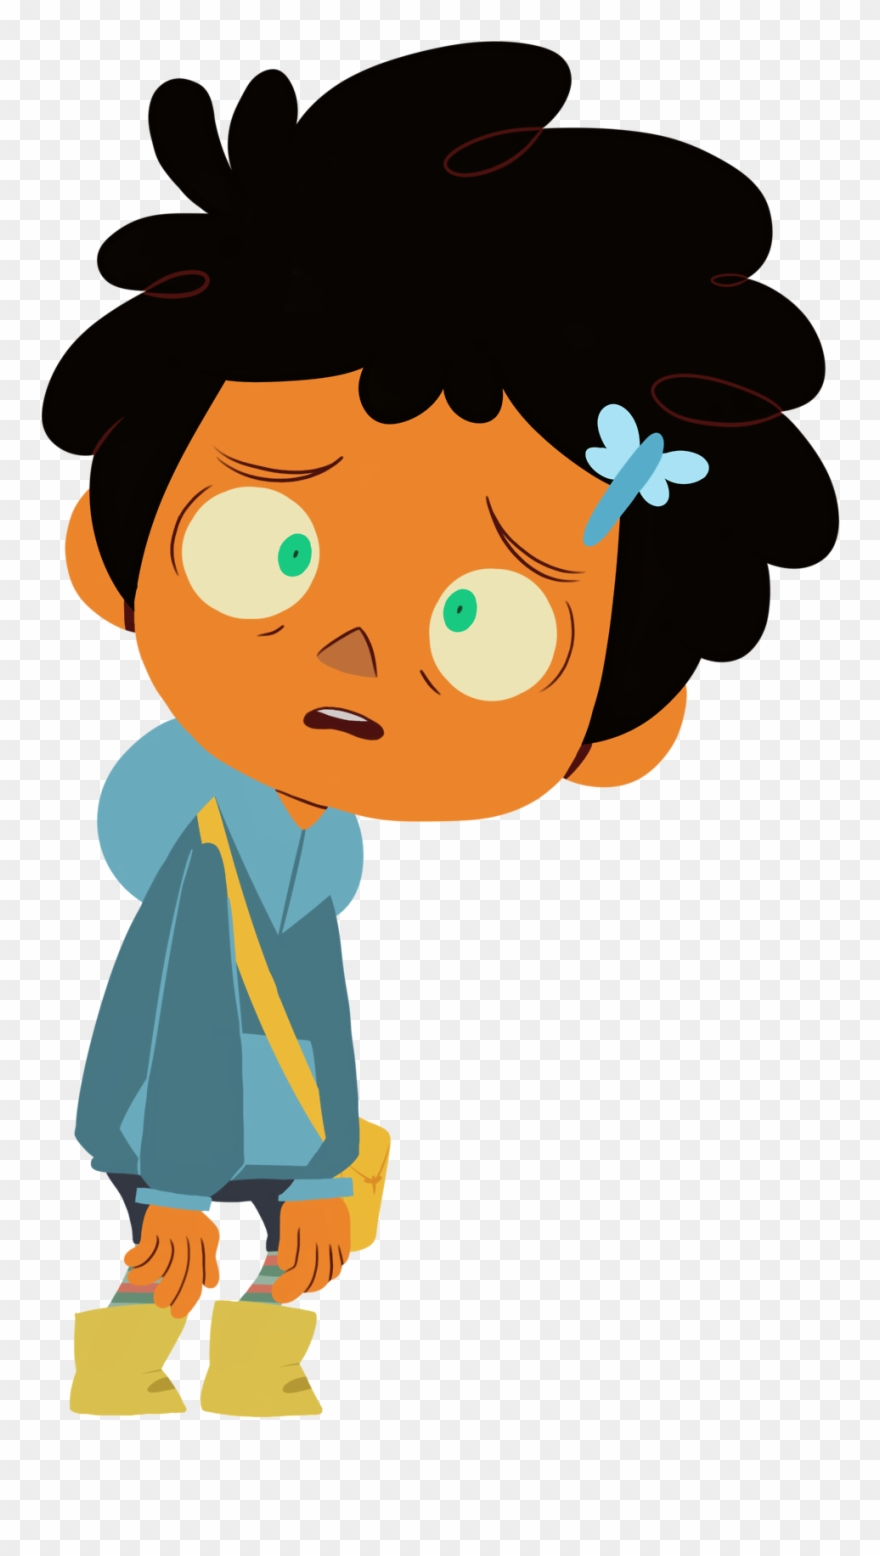 Coraline Clipart Png Download 3135976 Pinclipart